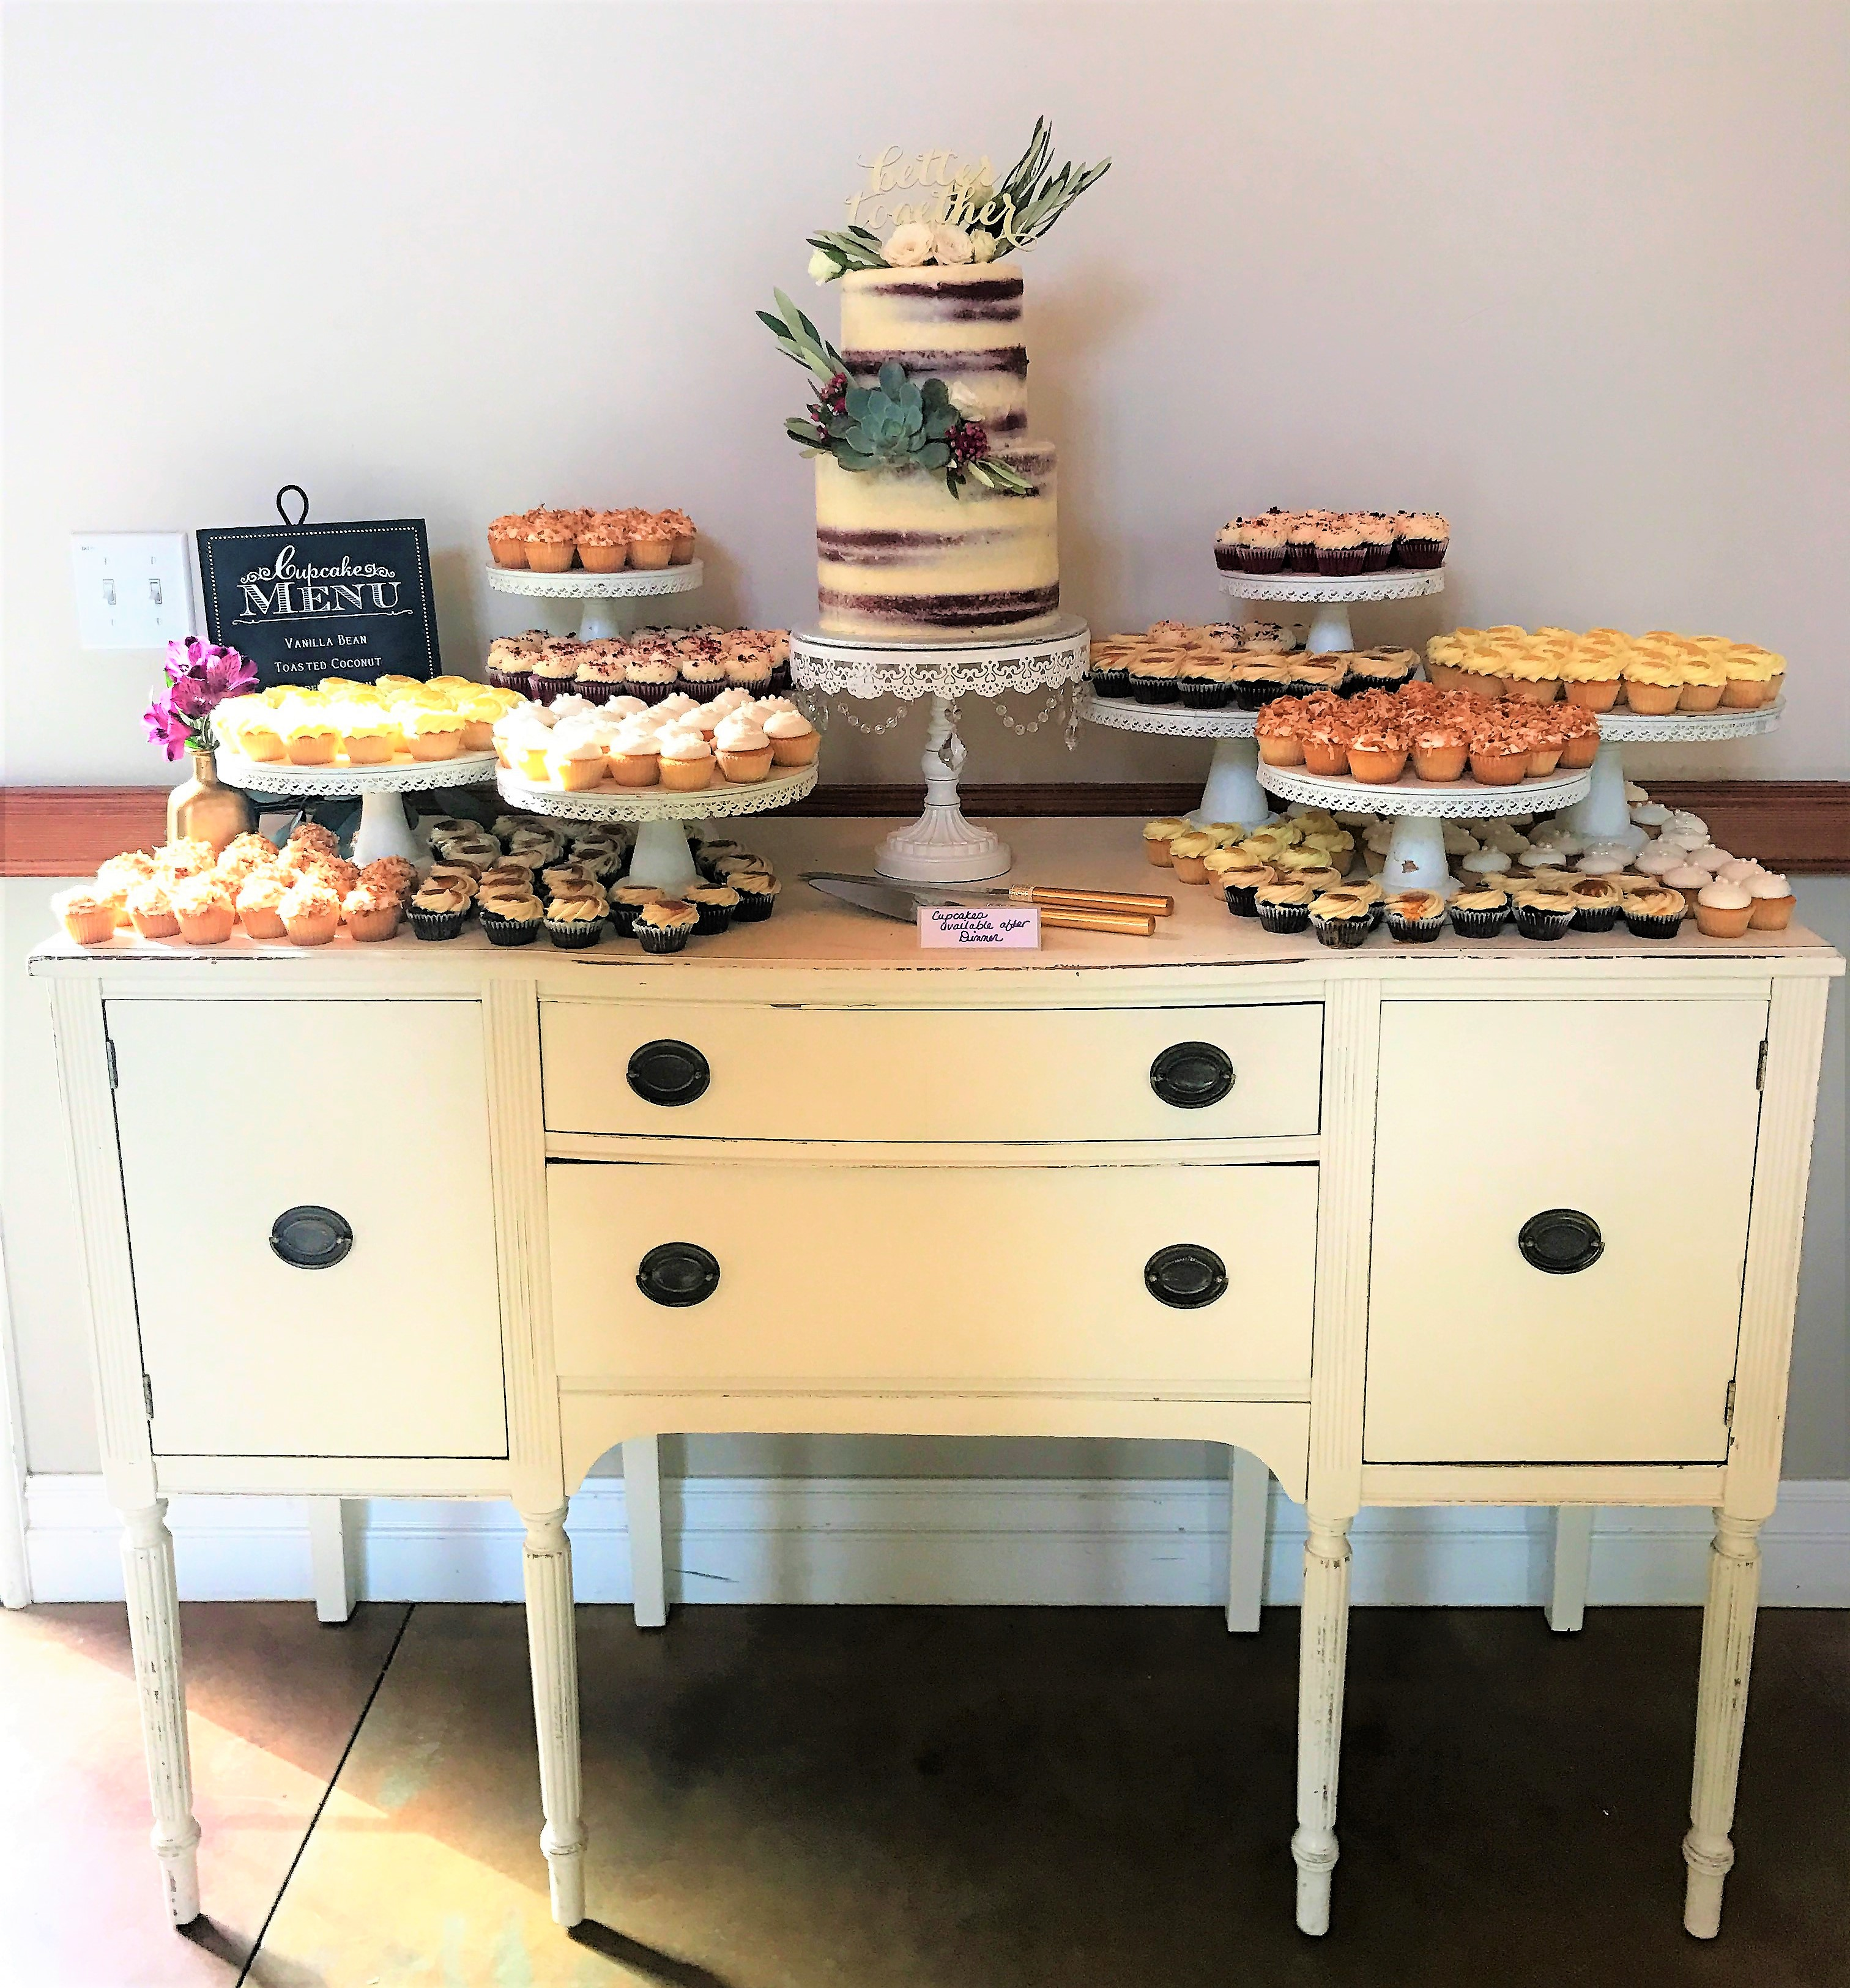 300 mini cupcakes, 2 tier partially naked cutting cake